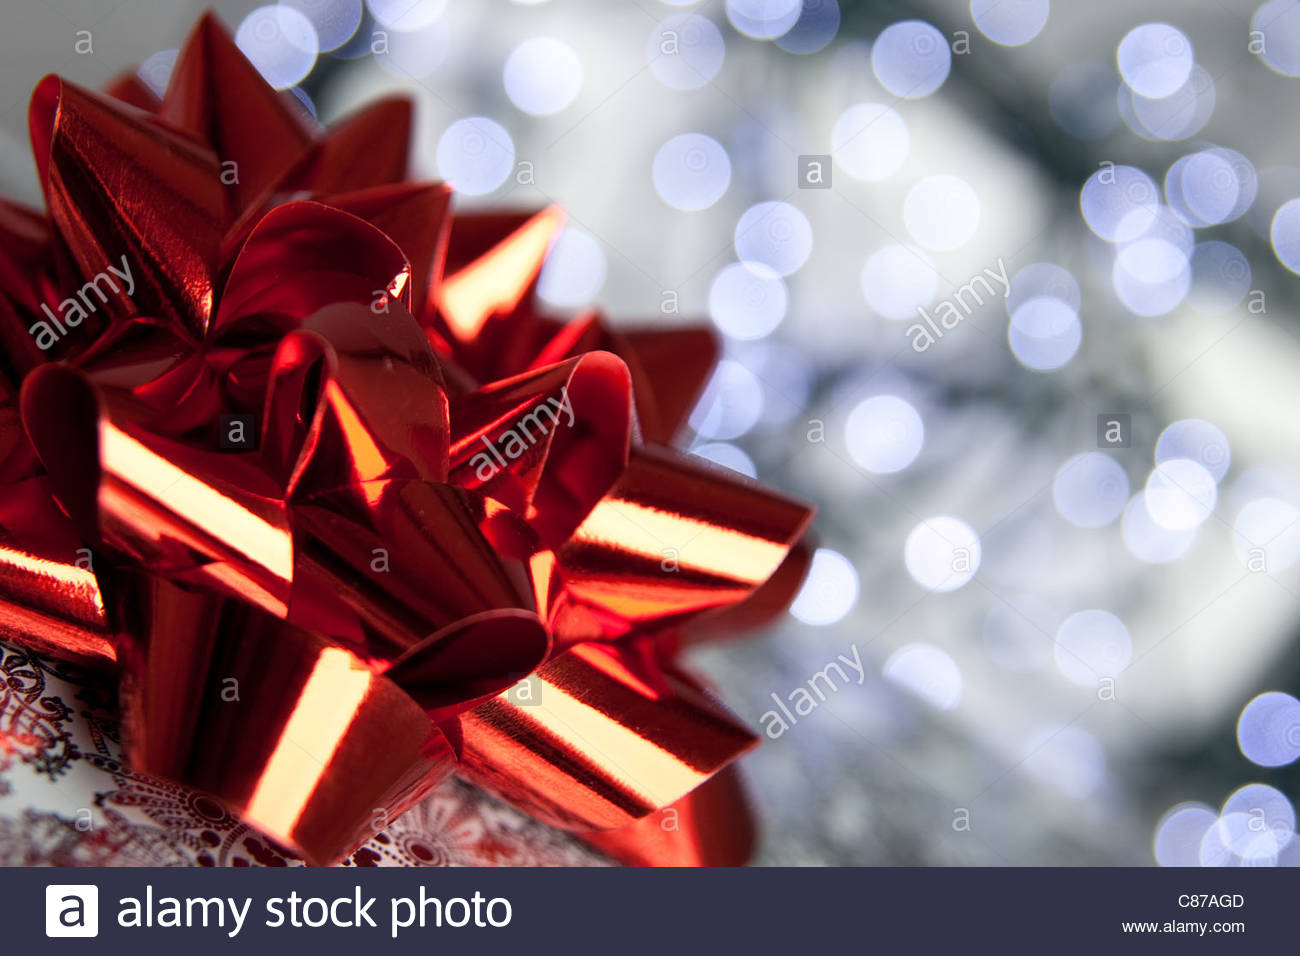 A close view of a red bow on top of a Christmas present, against a background of fairy lights - Stock Image